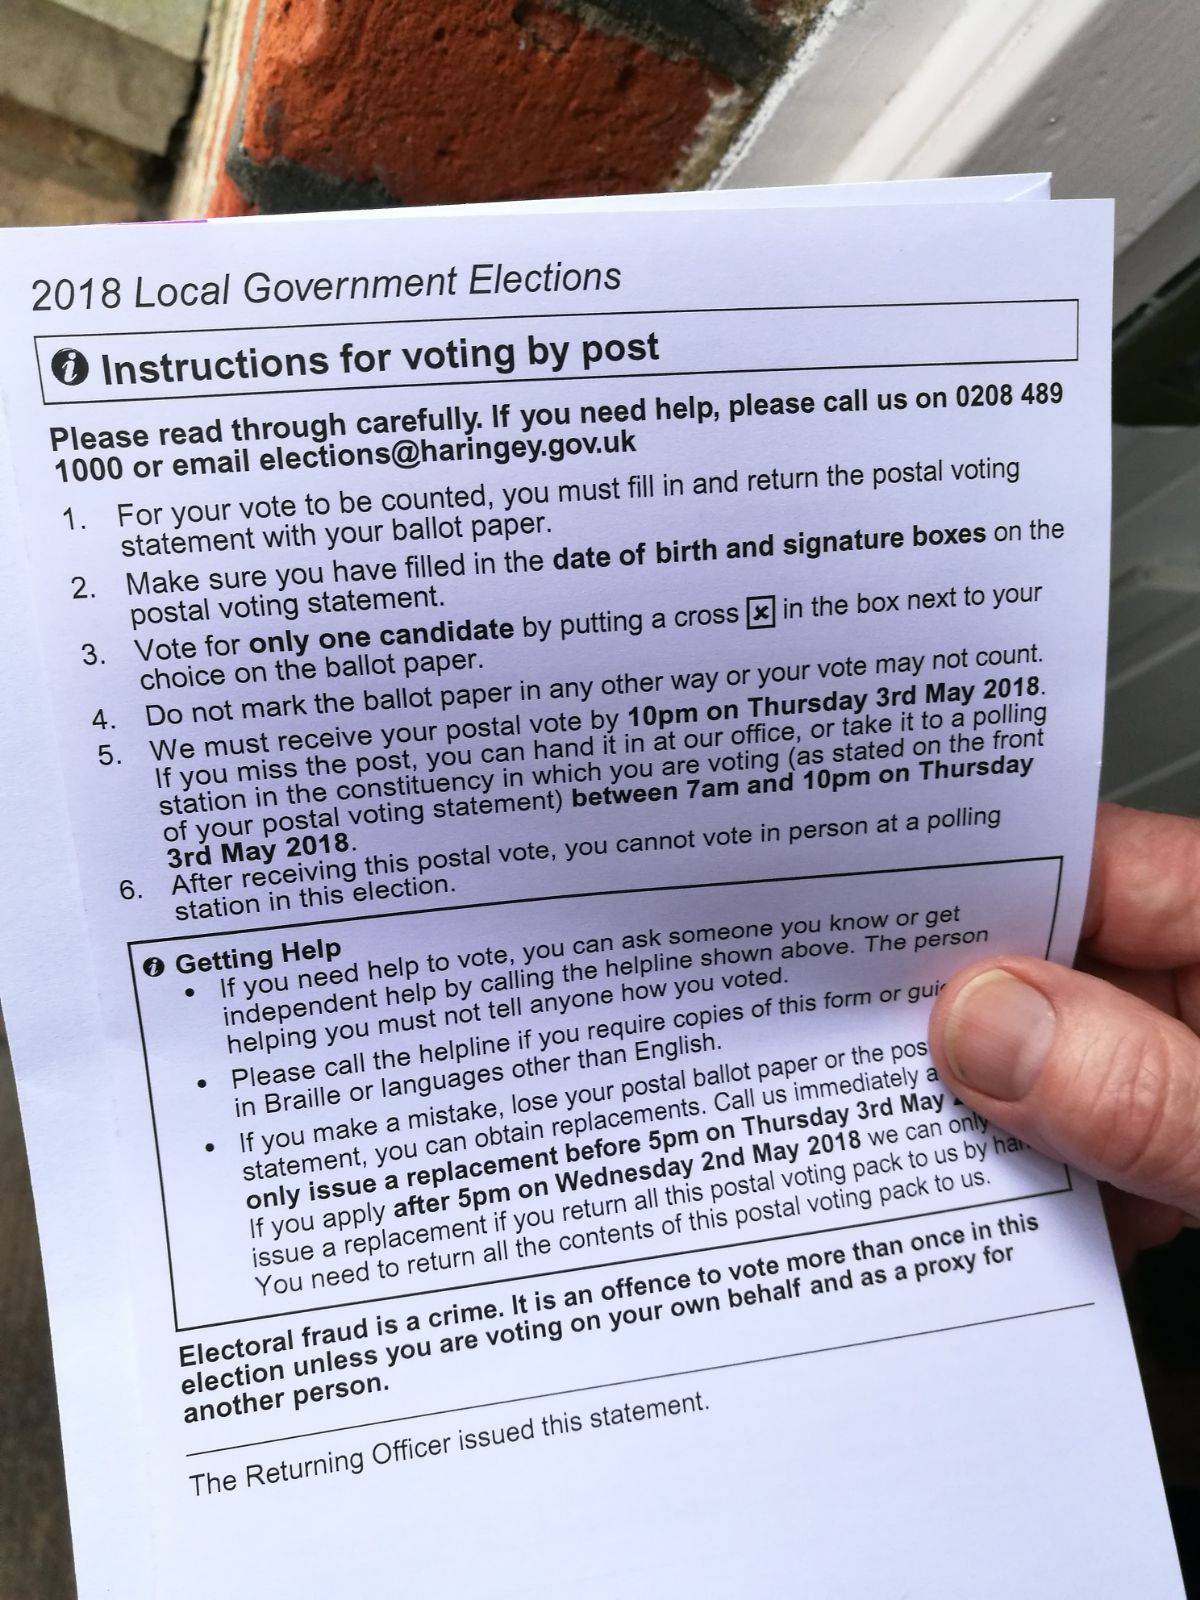 A copy of the incorrect voting instructions